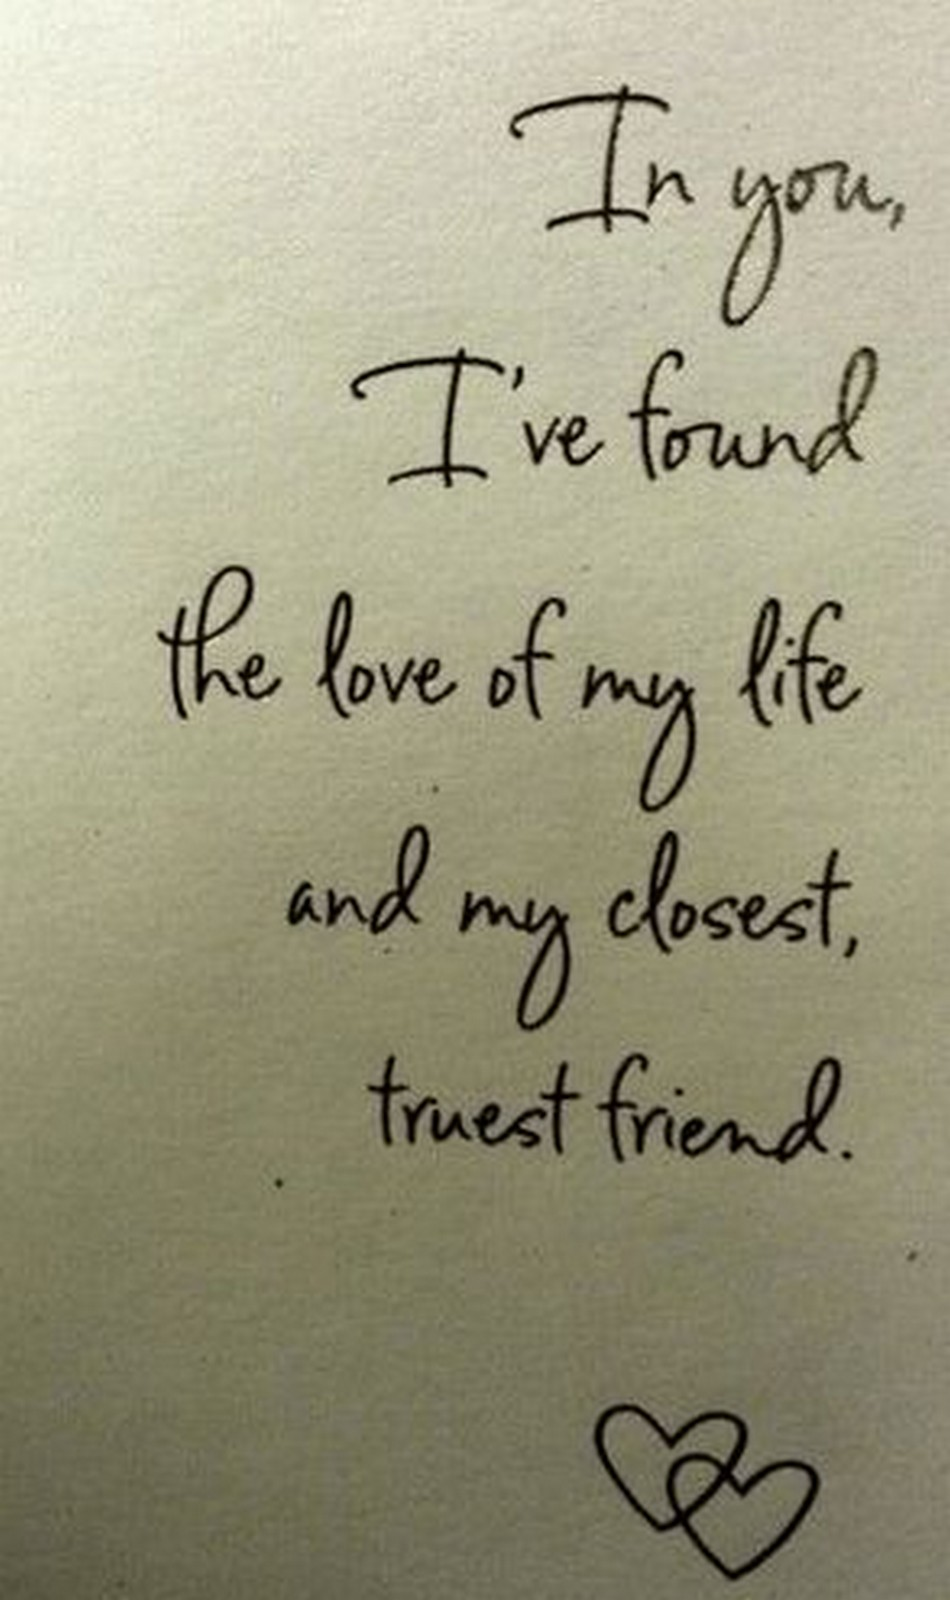 """55 Romantic Quotes - """"In you, I've found the love of my life and my closest, truest friend."""""""